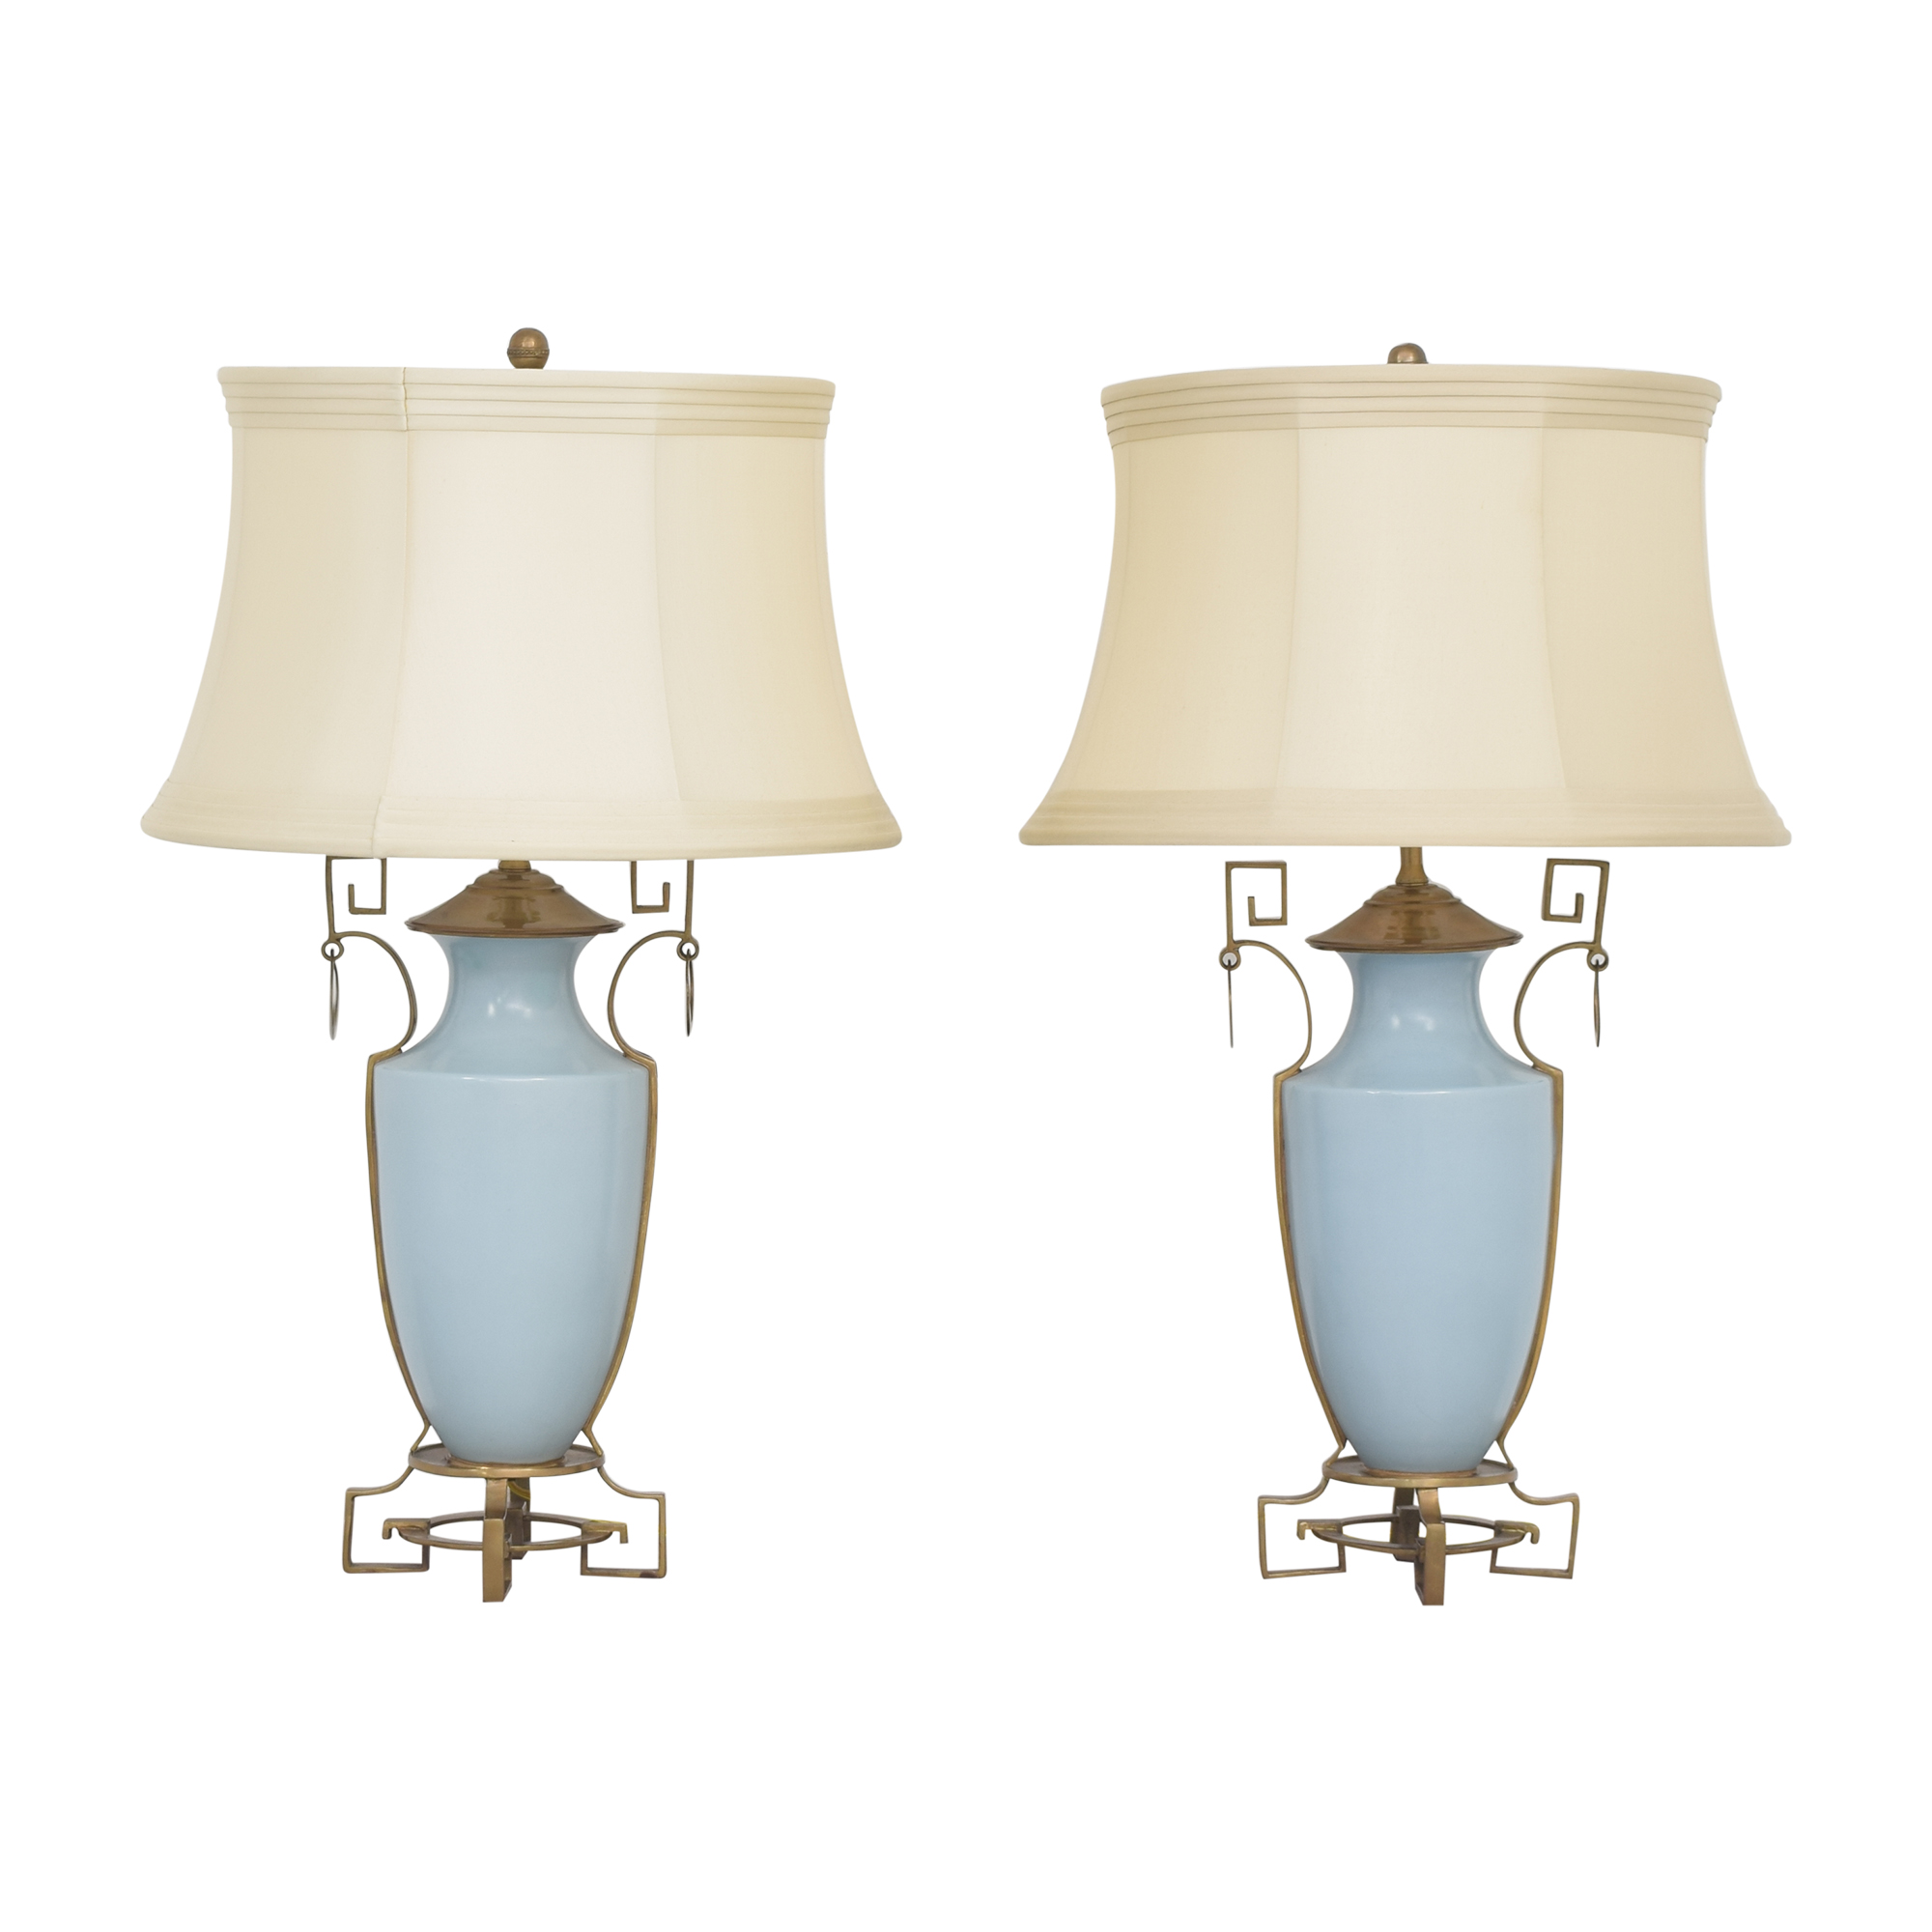 Decorative Table Lamps / Lamps